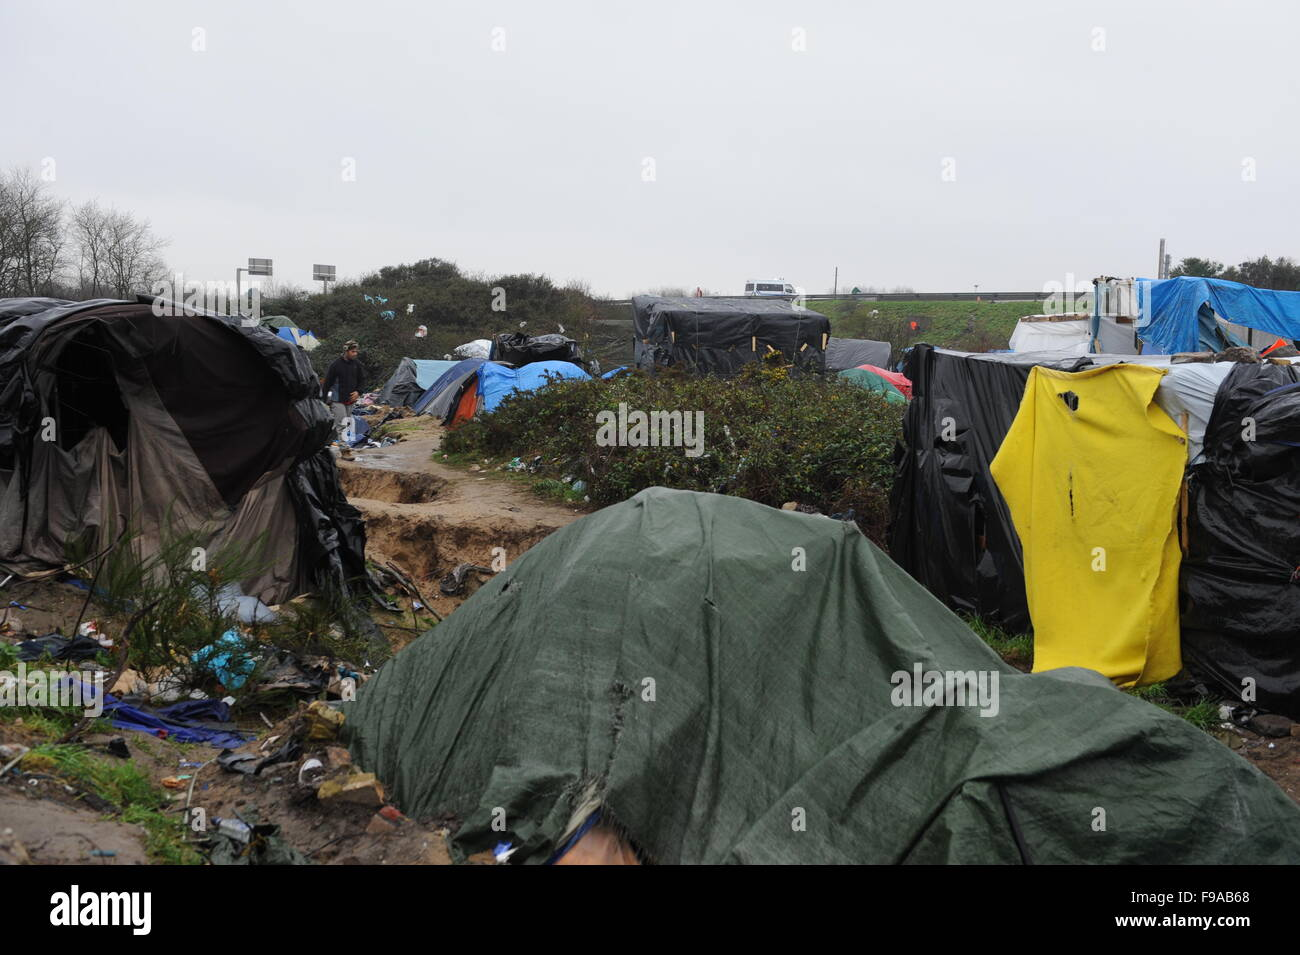 General view of tents and temporary shelters inside the demolition zone. Many tents are covered in tarpaulins to make them more weather tight. The day grey ... & Jungle Calais France. General view of tents and temporary ...